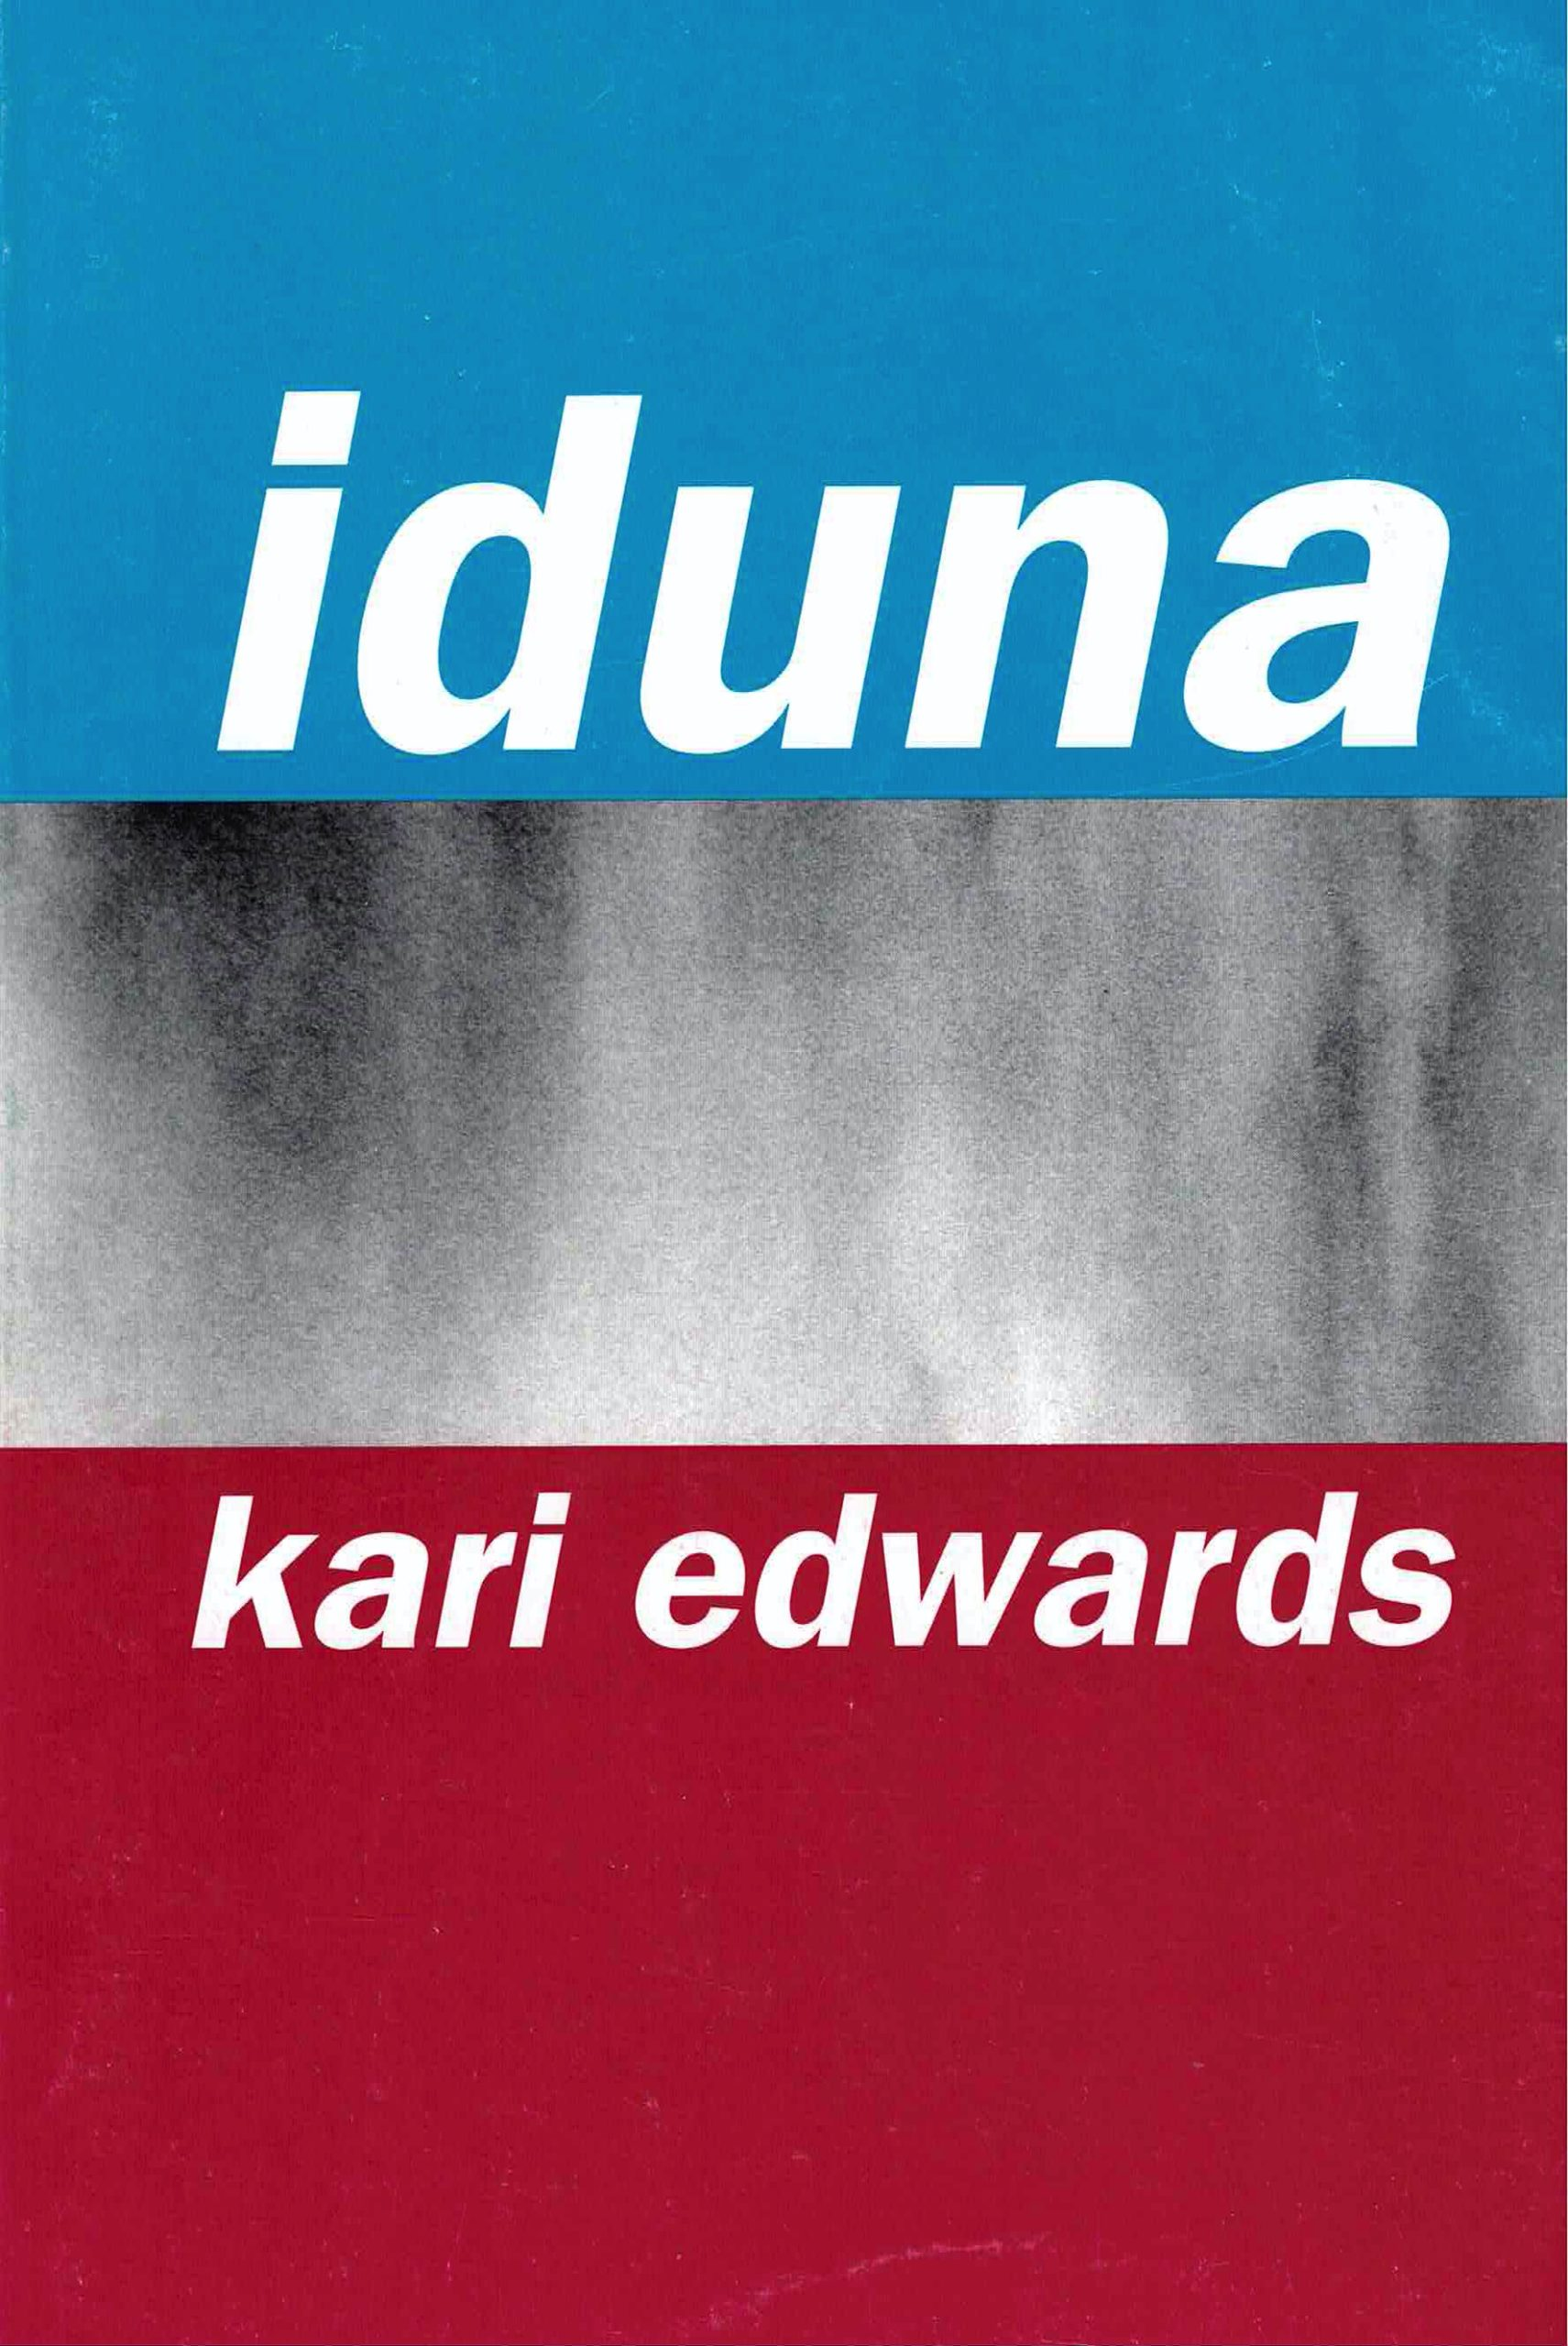 cover of Iduna by kari edwards; top third is bright sky blue, bottom third is deep red, middle thir is textured black and white, like a close up of smoke